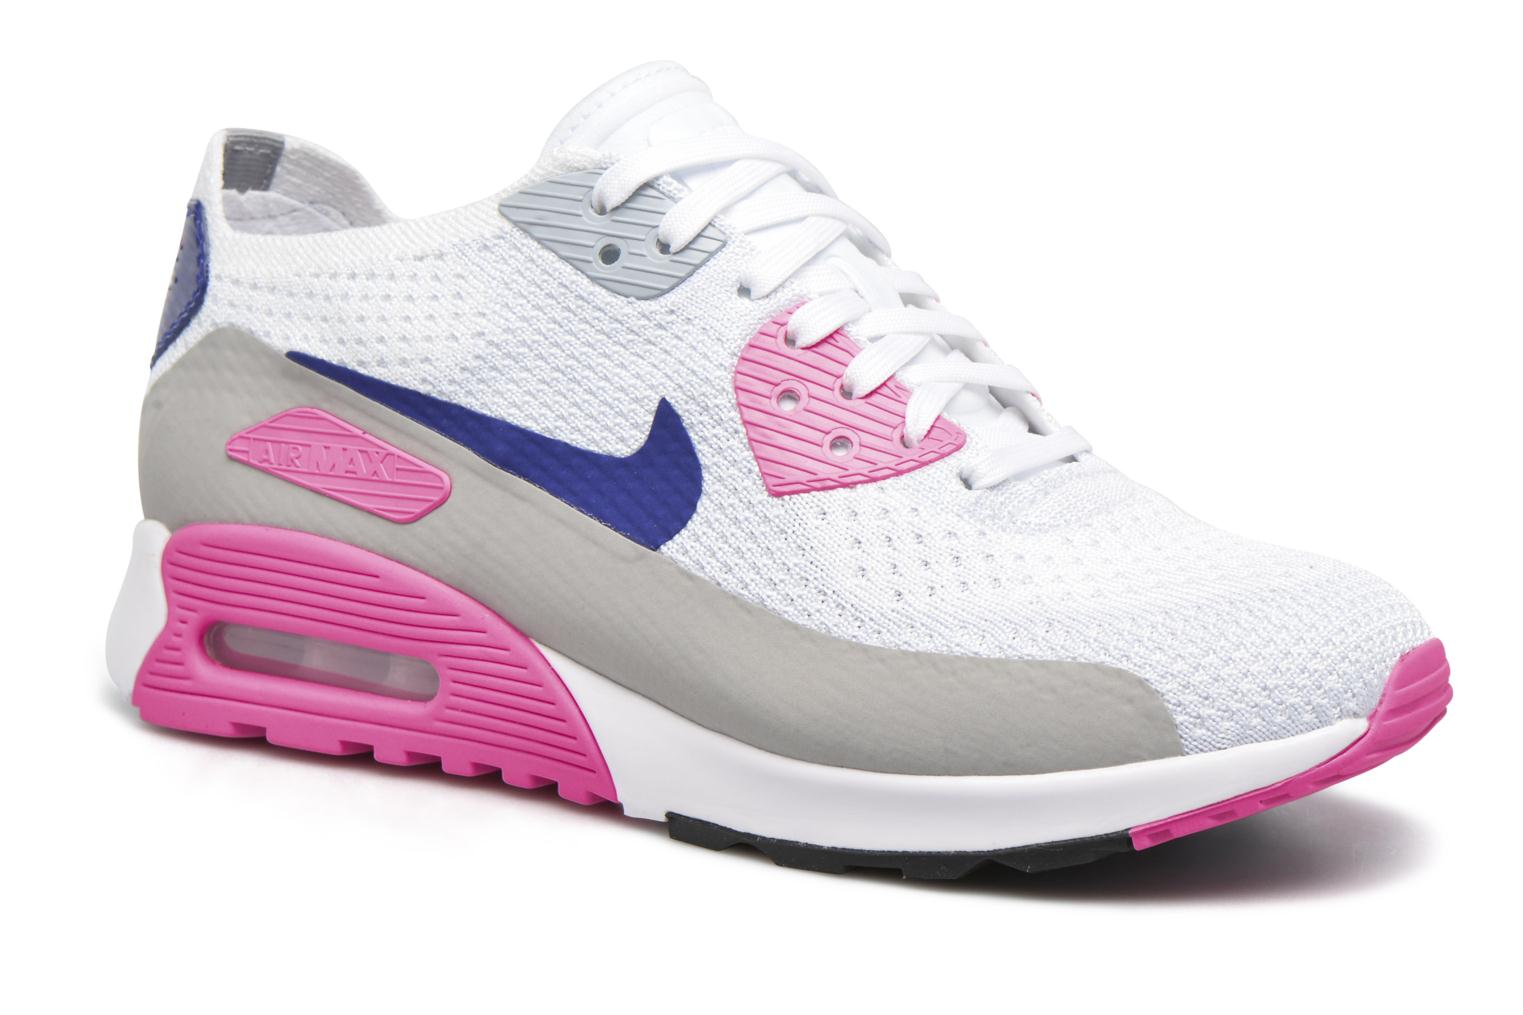 W Air Max 90 Ultra 2.0 Flyknit White/Concord-Laser Pink-Black